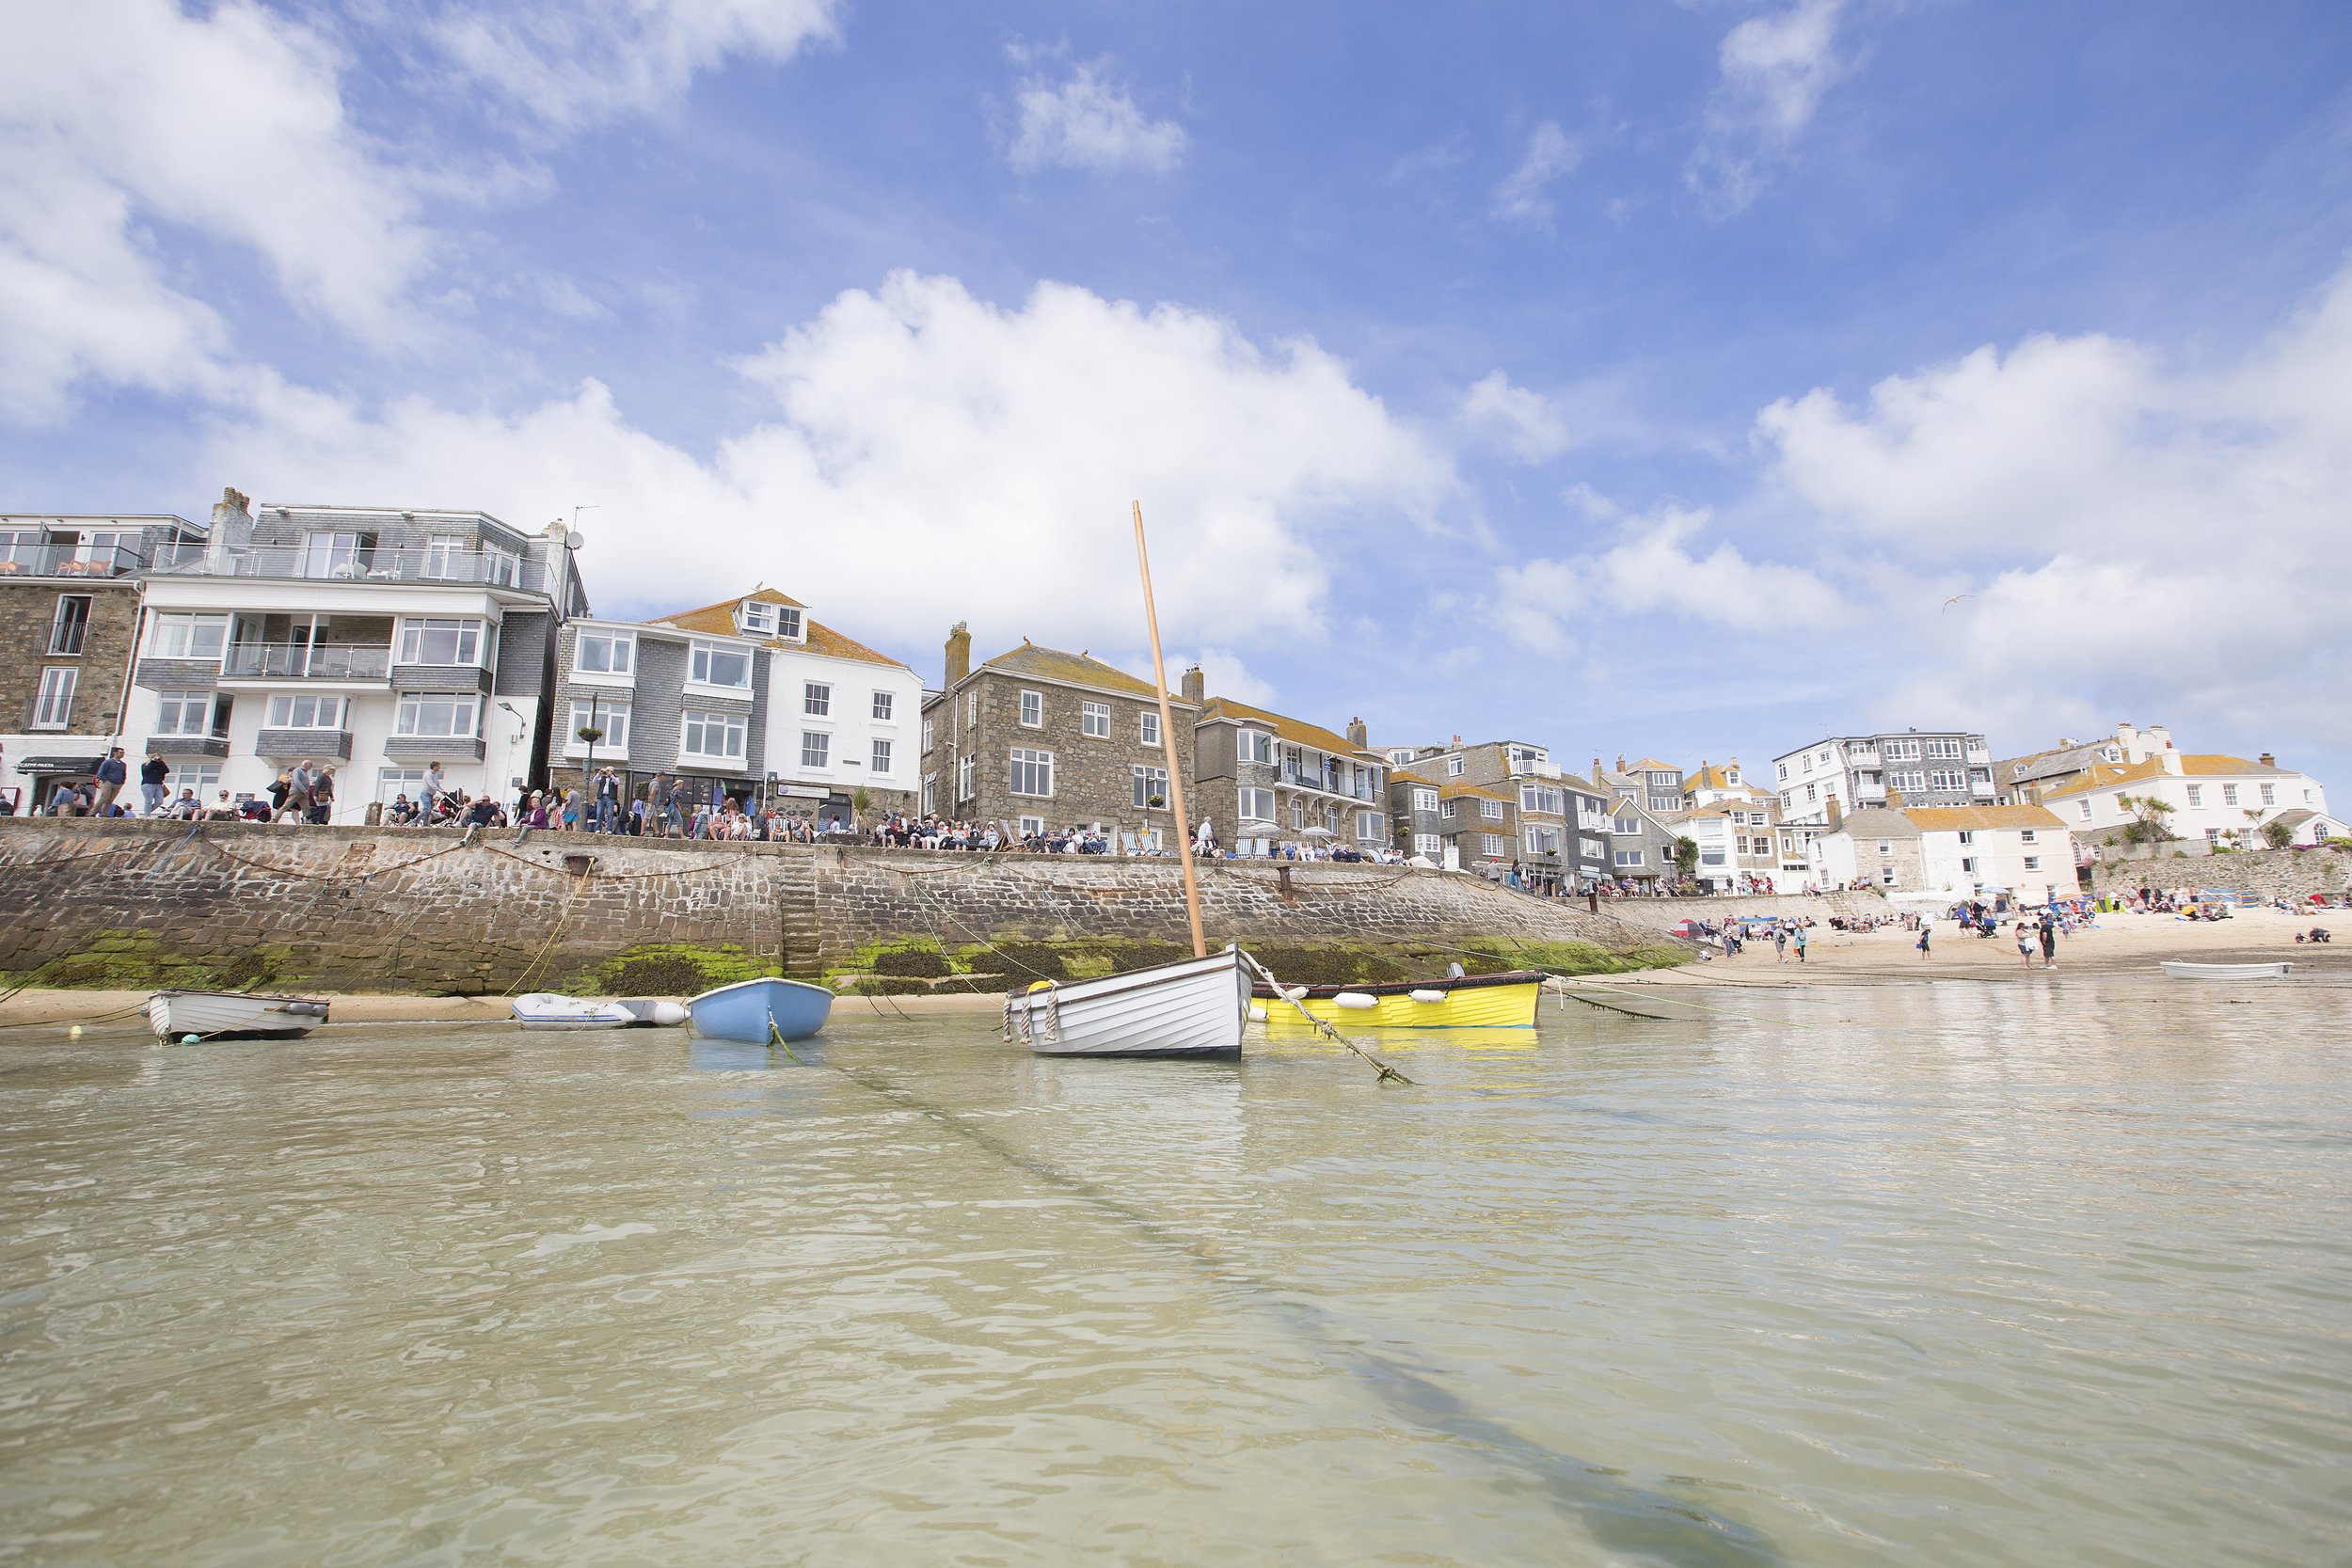 St Ives Harbour, Summer 2018